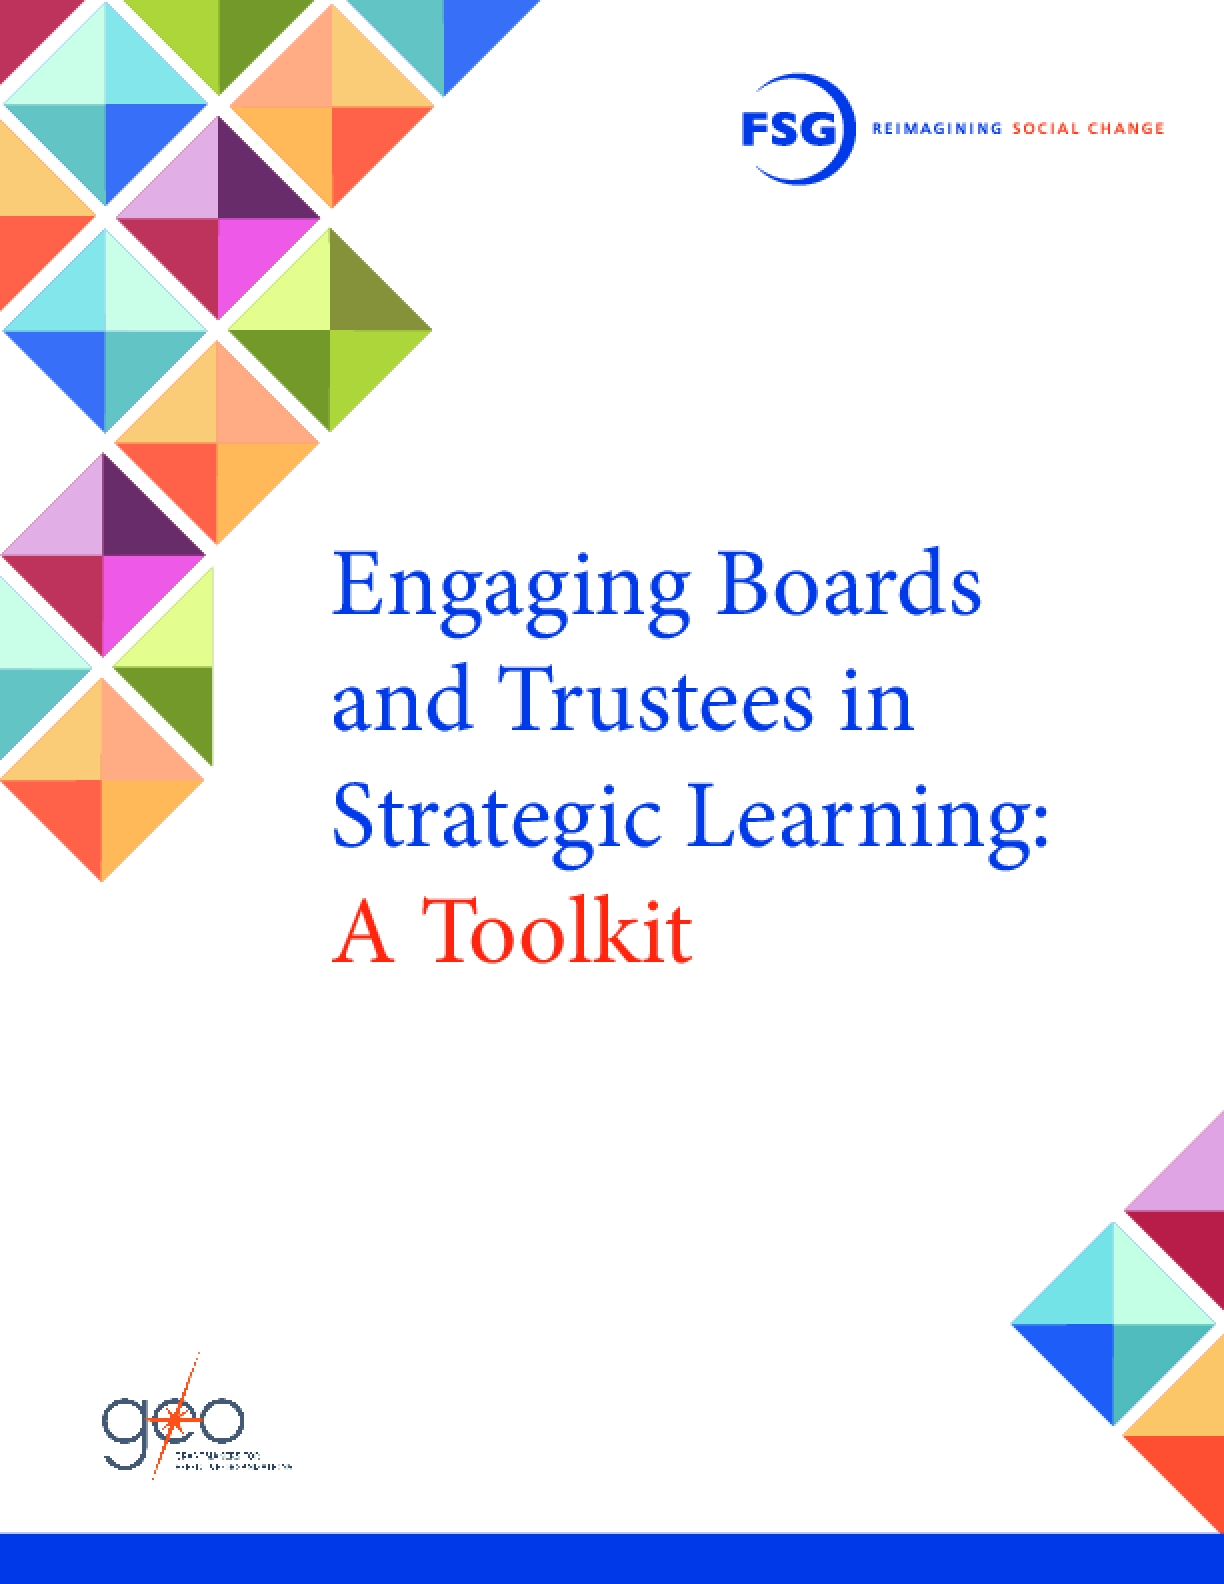 Engaging Boards and Trustees in Strategic Learning: A Toolkit